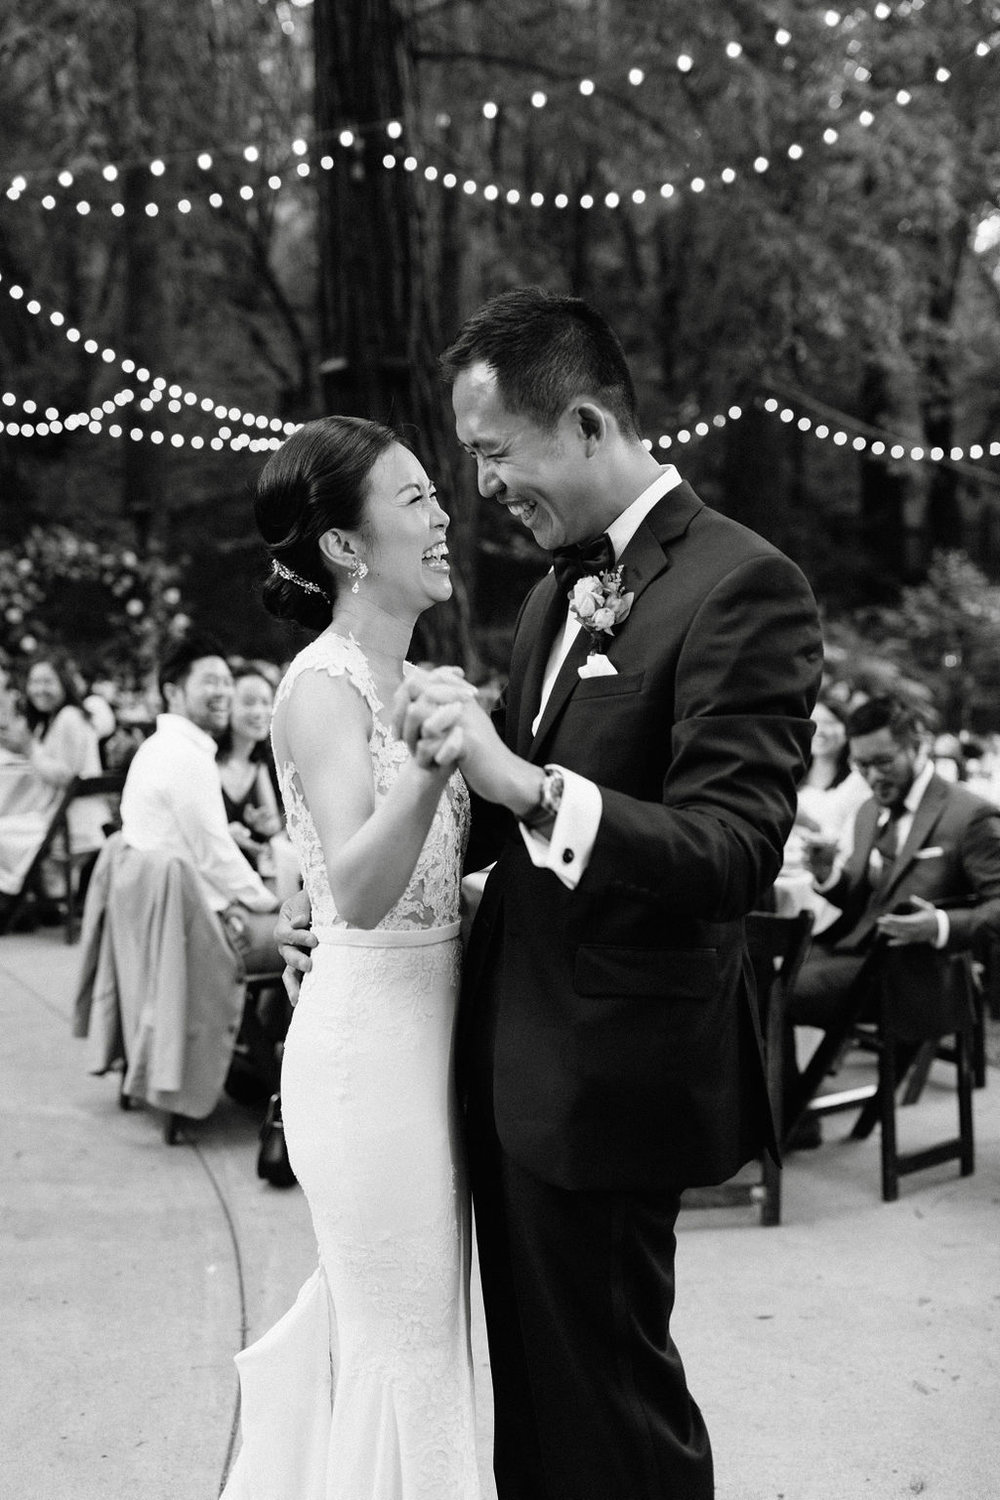 Deer Park Villa Wedding Planner Perfectly Planned Moments Nirav Patel Photography First Dance Black and White.JPG